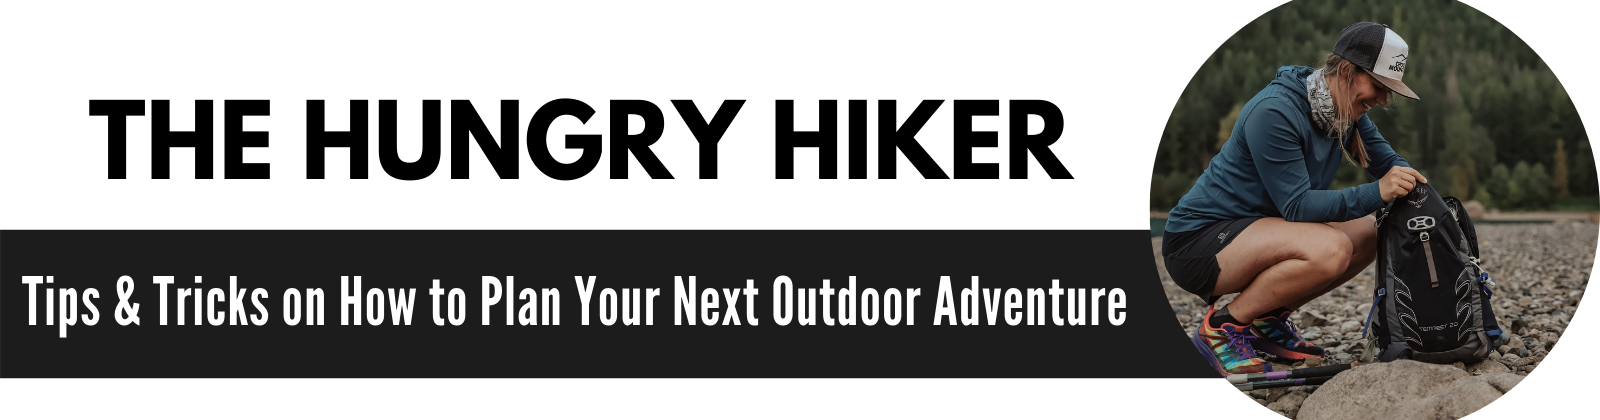 The Hungry Hiker